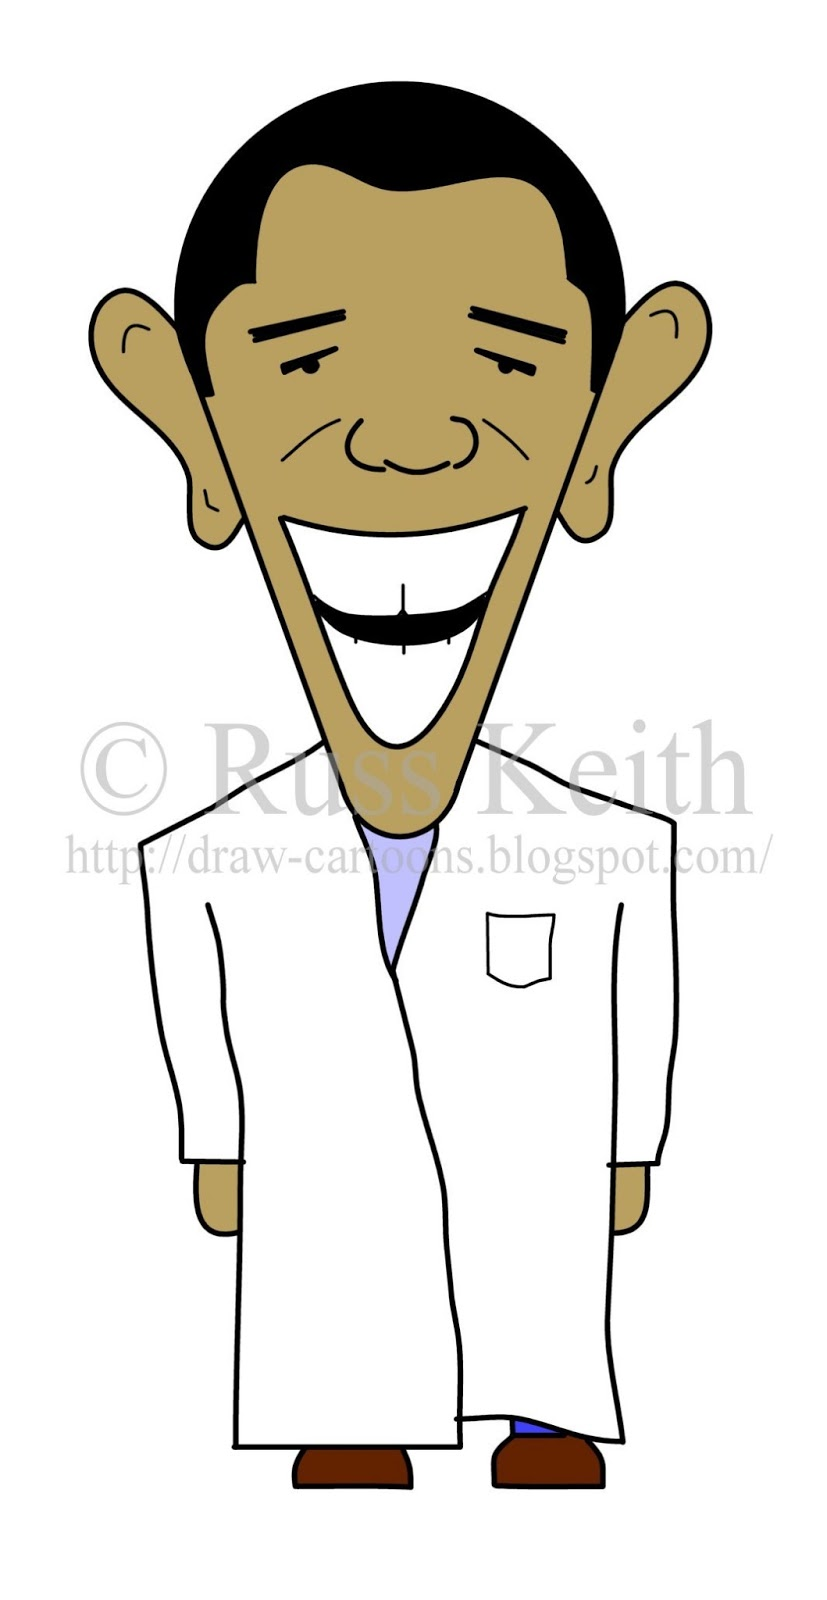 How To Draw Cartoons: President Obama